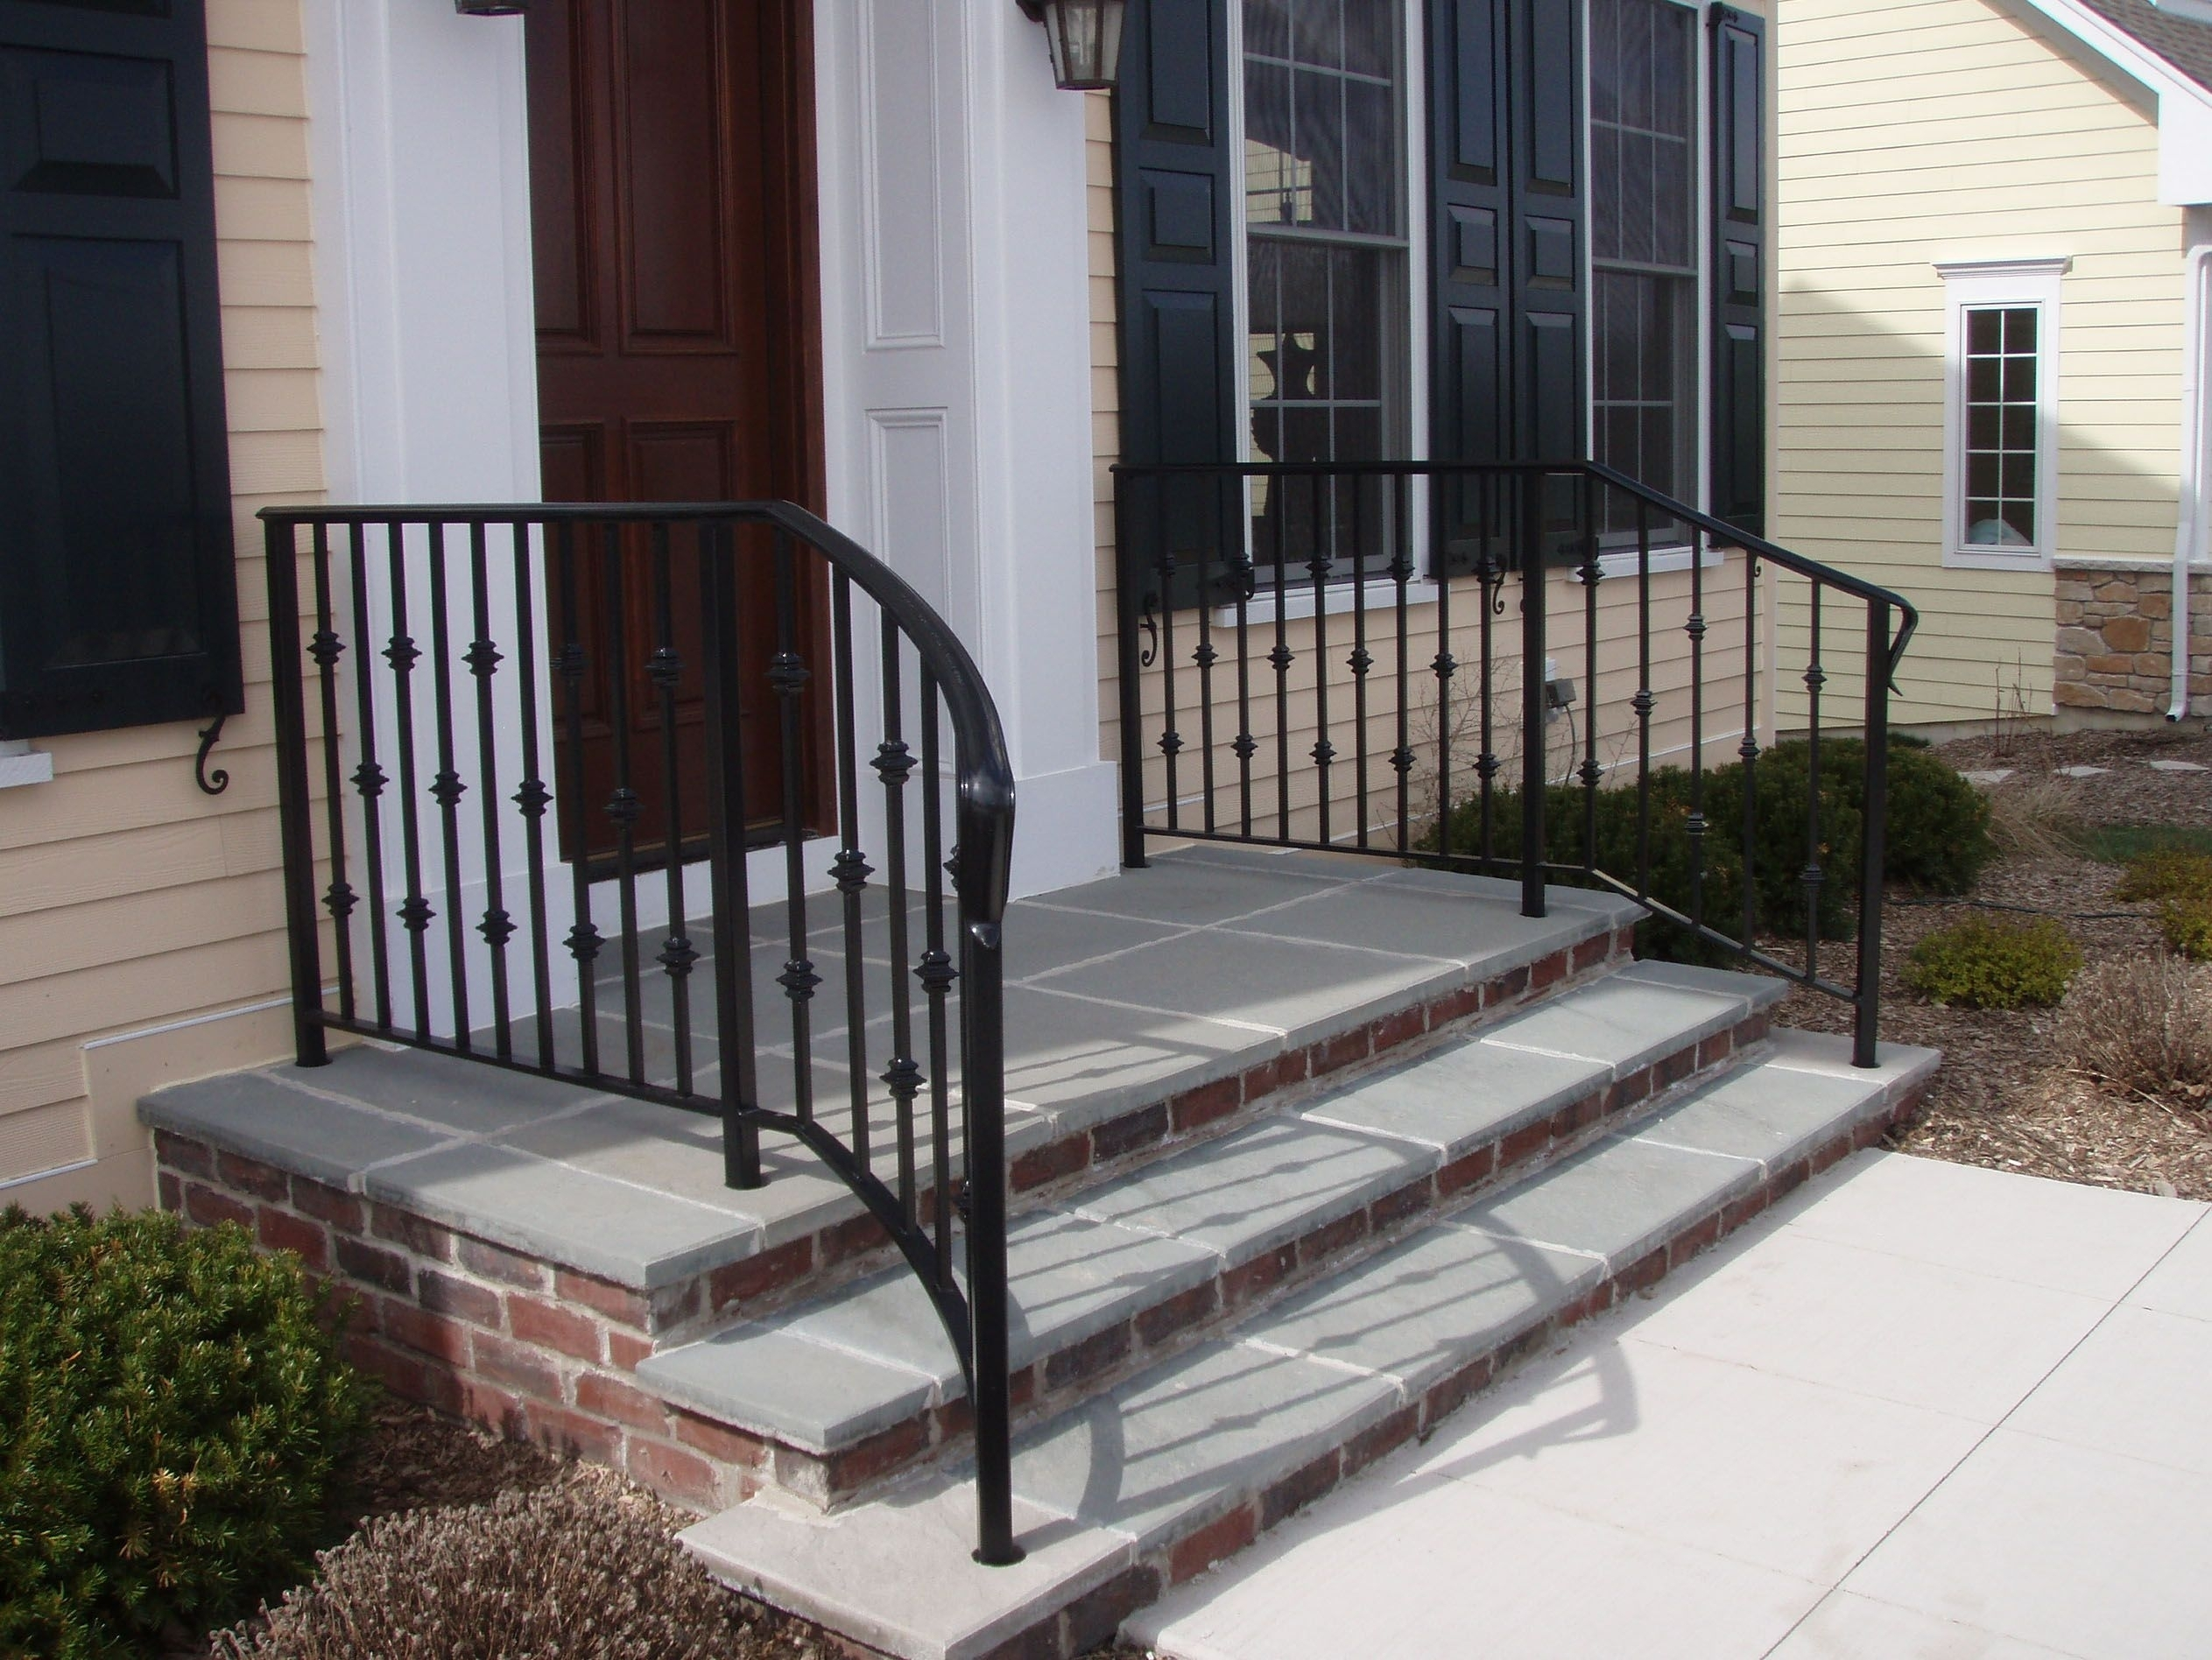 Wrought Iron Handrails For Porch Steps — Randolph Indoor And | Handrails For Outdoor Steps | Plastic | Galvanized Steel | Solid Wood | Rail | Simple